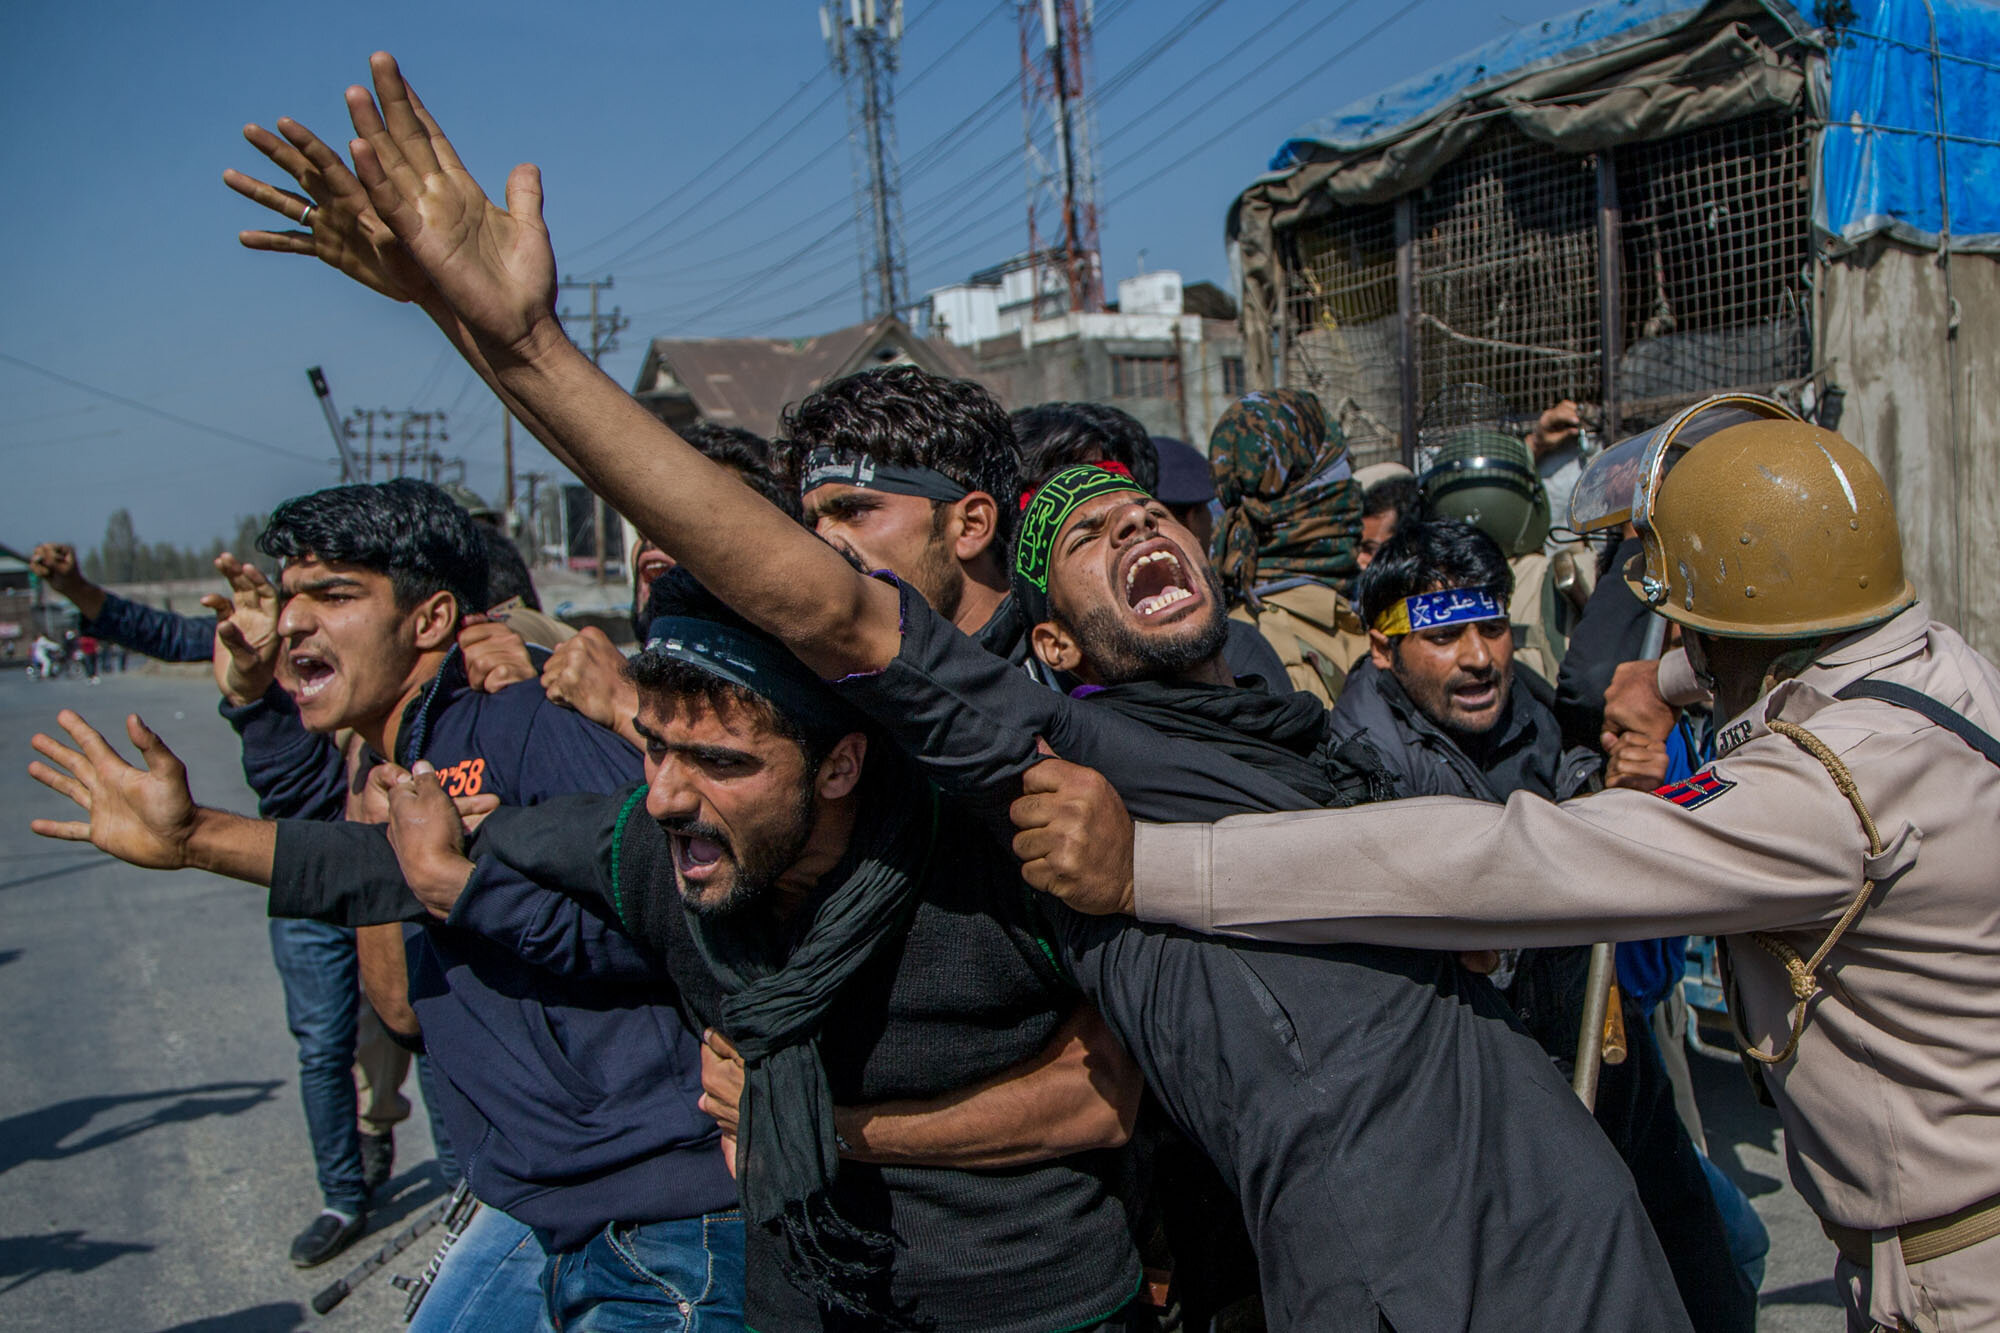 Kashmiri Shiite Muslims shouts religious and pro-freedom slogan as Indian policemen stop them from for participating in a religious procession during curfew in Srinagar, Indian controlled Kashmir, Oct. 10, 2016. (AP Photo/Dar Yasin)